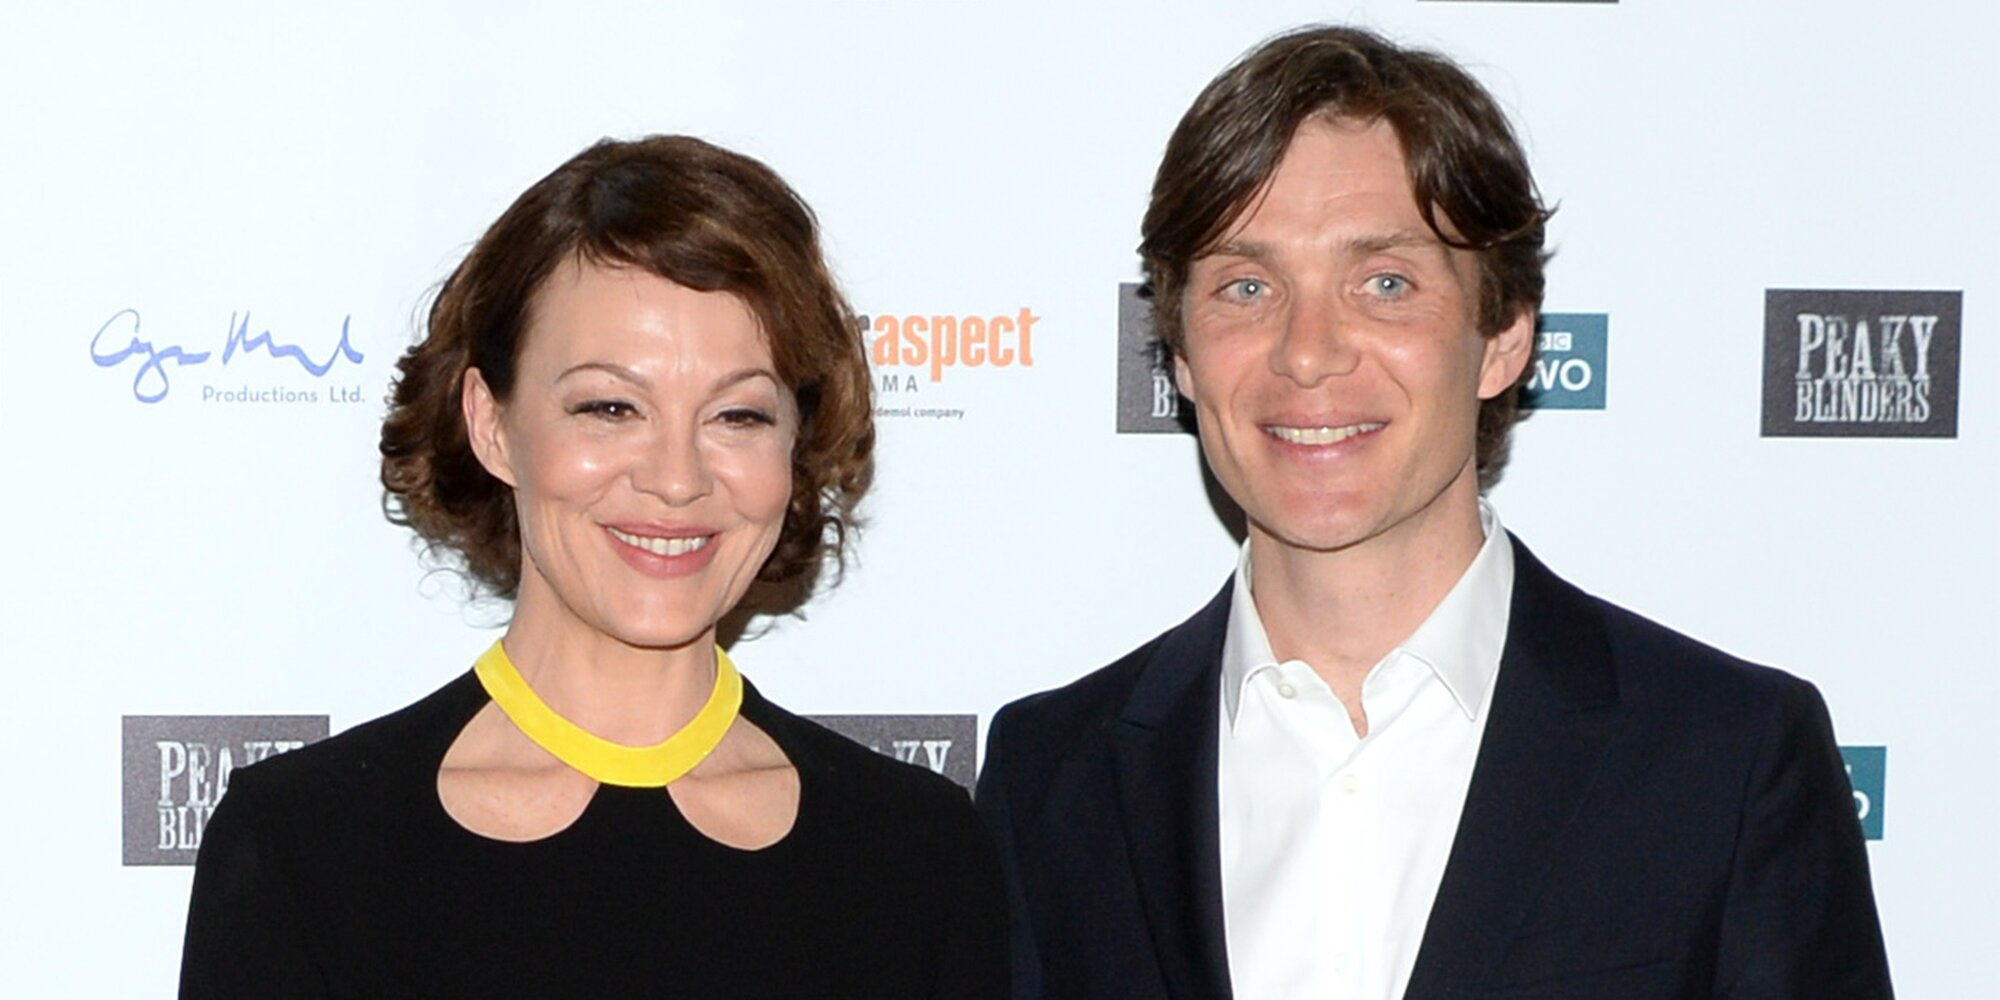 Peaky Blinders star Cillian Murphy and more pay tribute to Harry Potter actress Helen McCrory.jpg